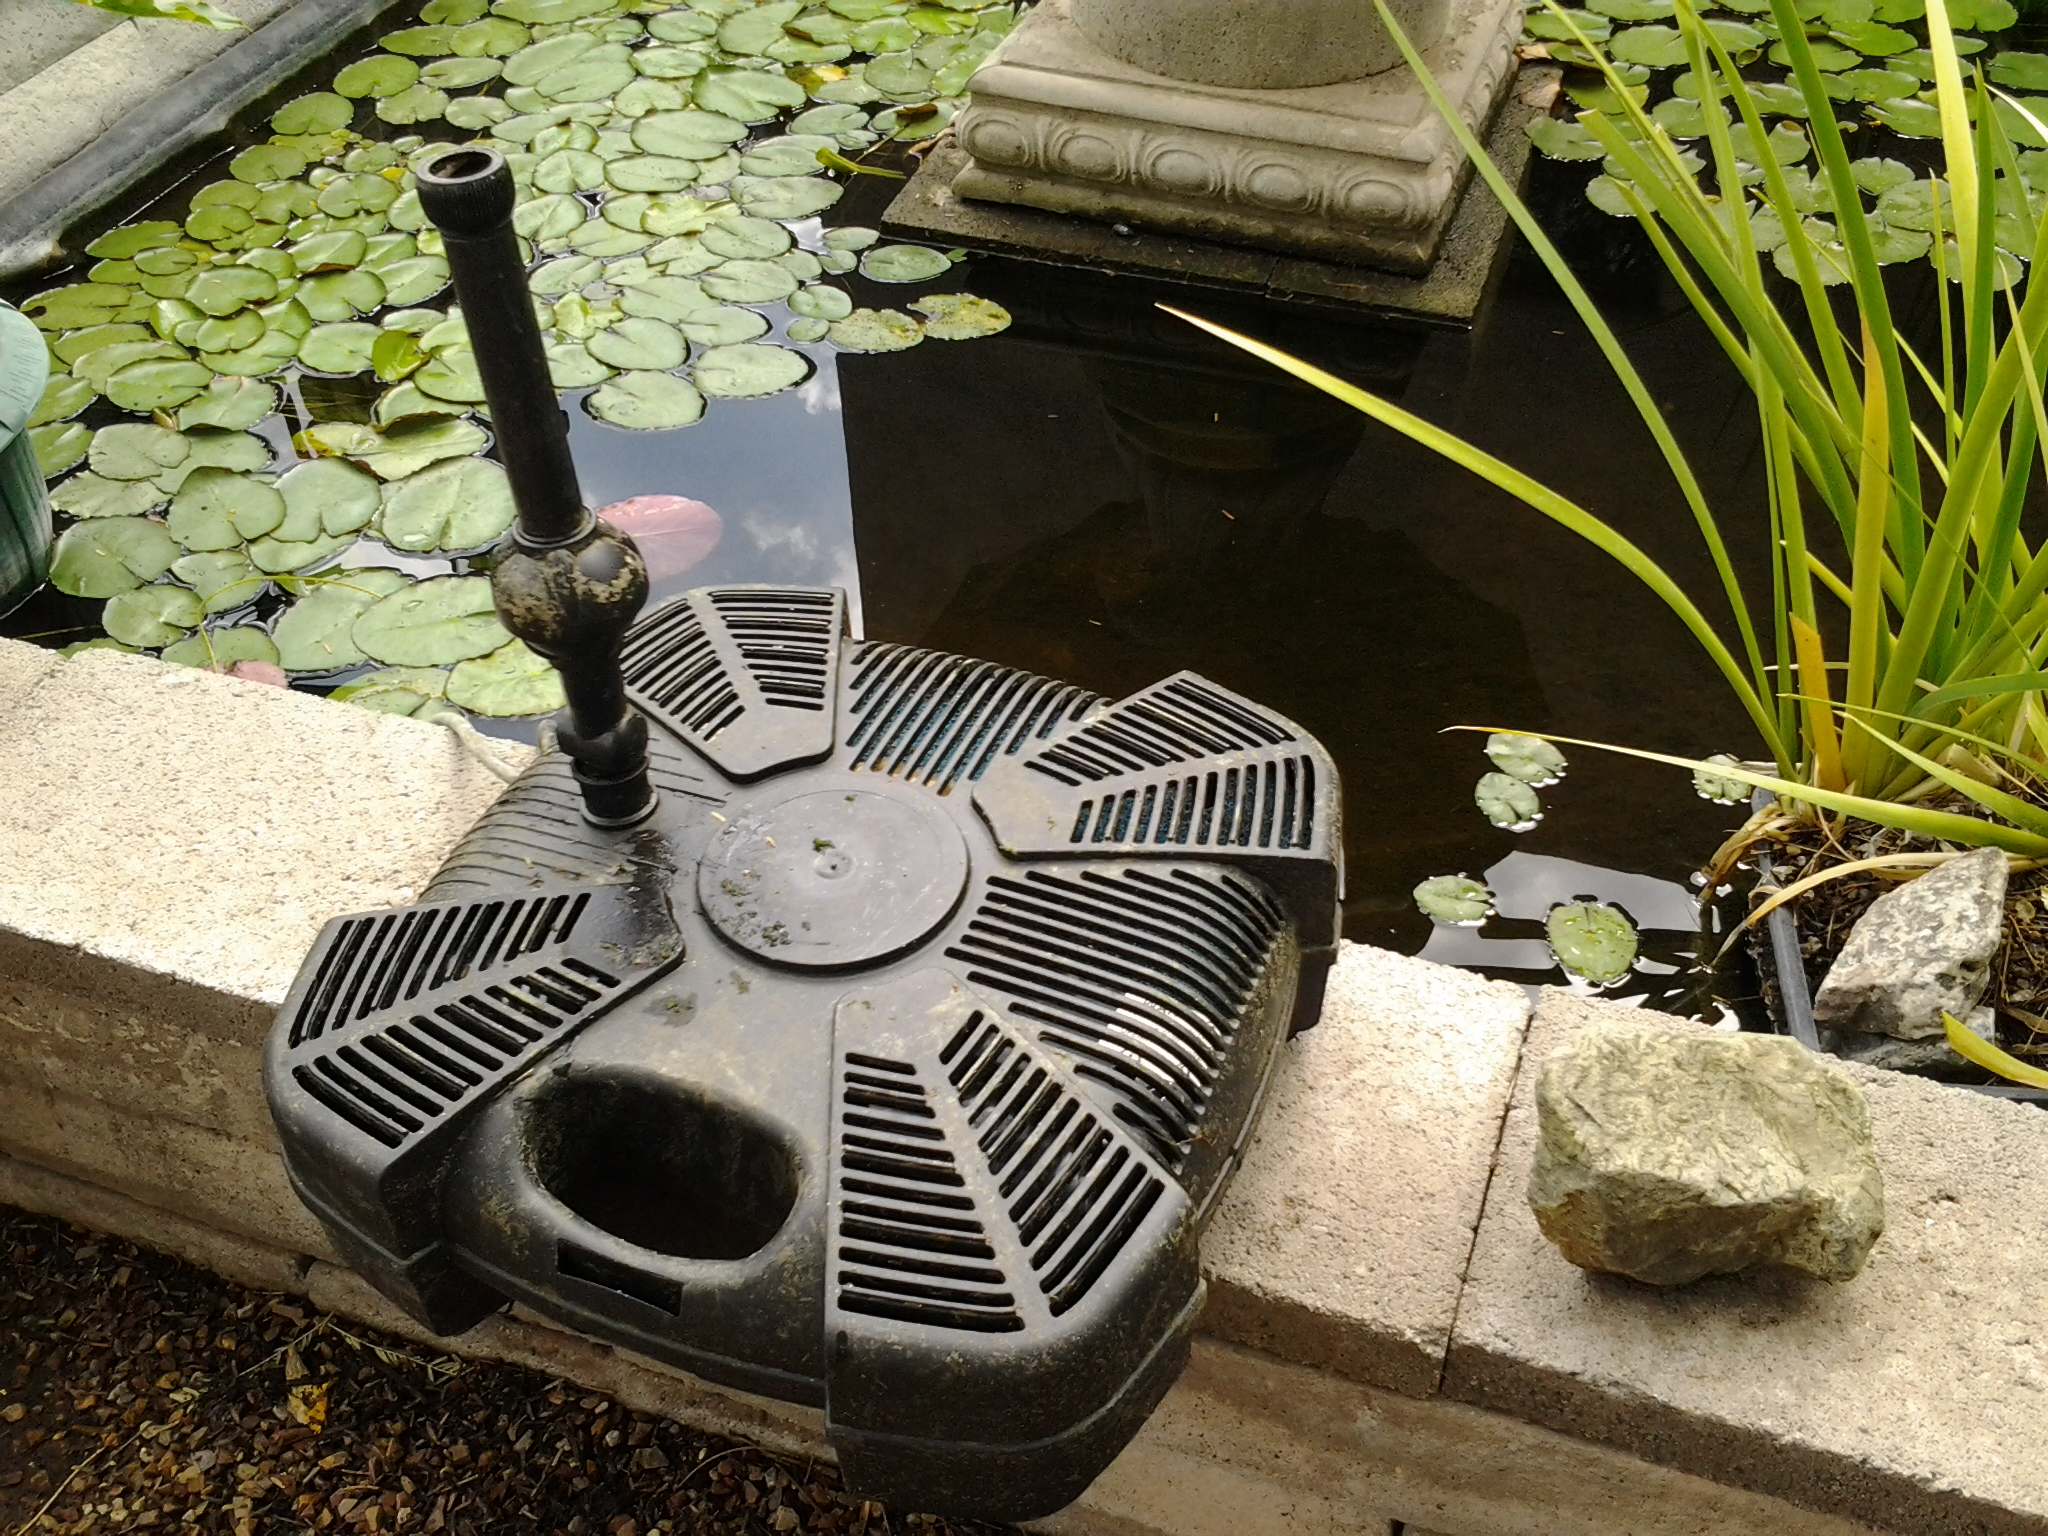 Best pond filter system all in one lifegard pump with uv for Pond pump and filter system